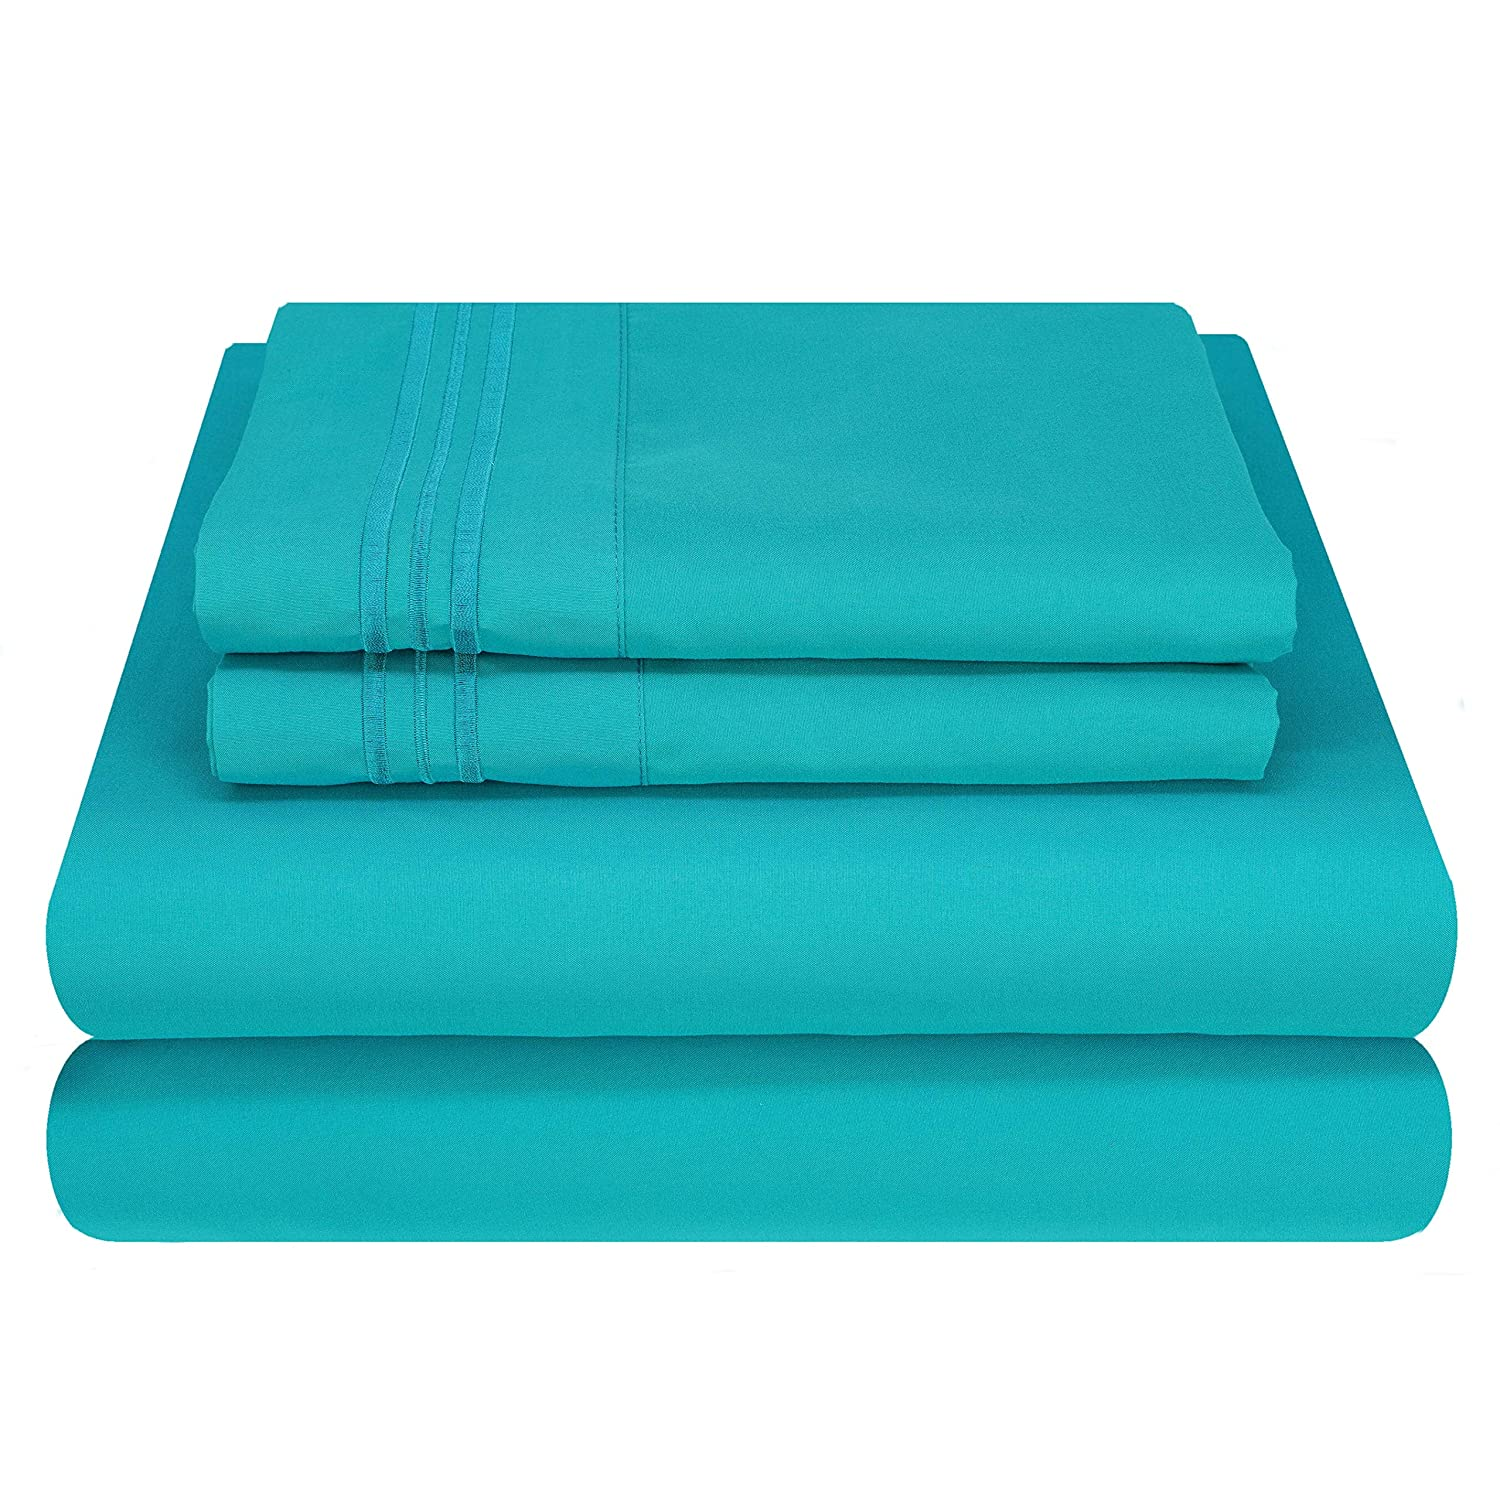 Mezzati Luxury Bed Sheet Set - Soft and Comfortable 1800 Prestige Collection - Brushed Microfiber Bedding (Ocean Teal, Cal King Size)